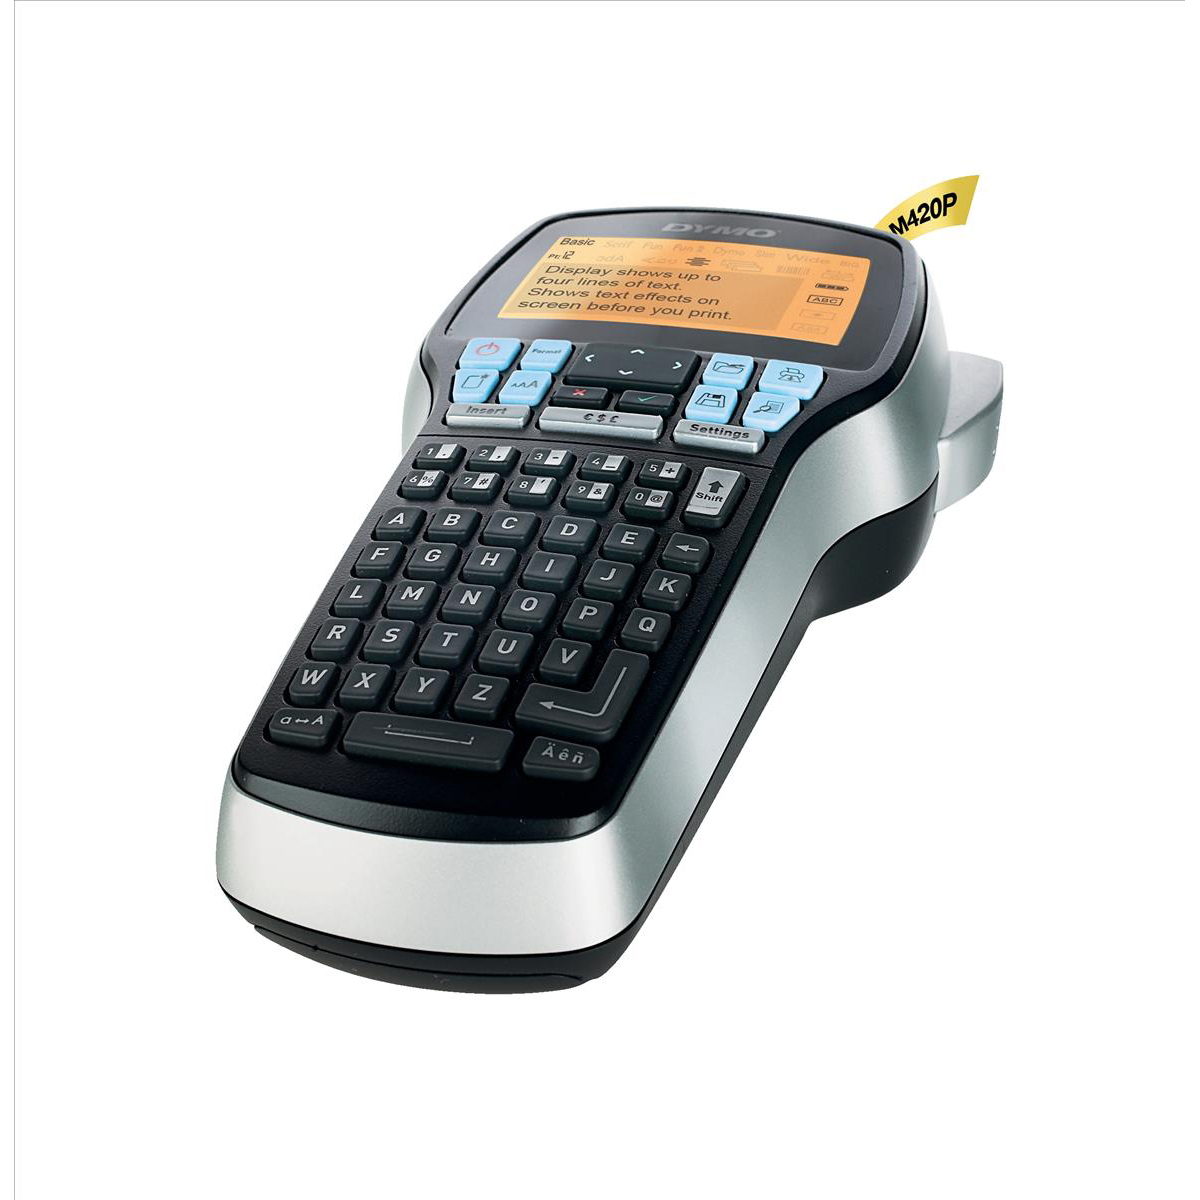 Labelling Machines Dymo LabelManager 420P Compact Label Maker 4-Line Display ABC 10 Styles 7 Type-sizes D1 Ref S0915490